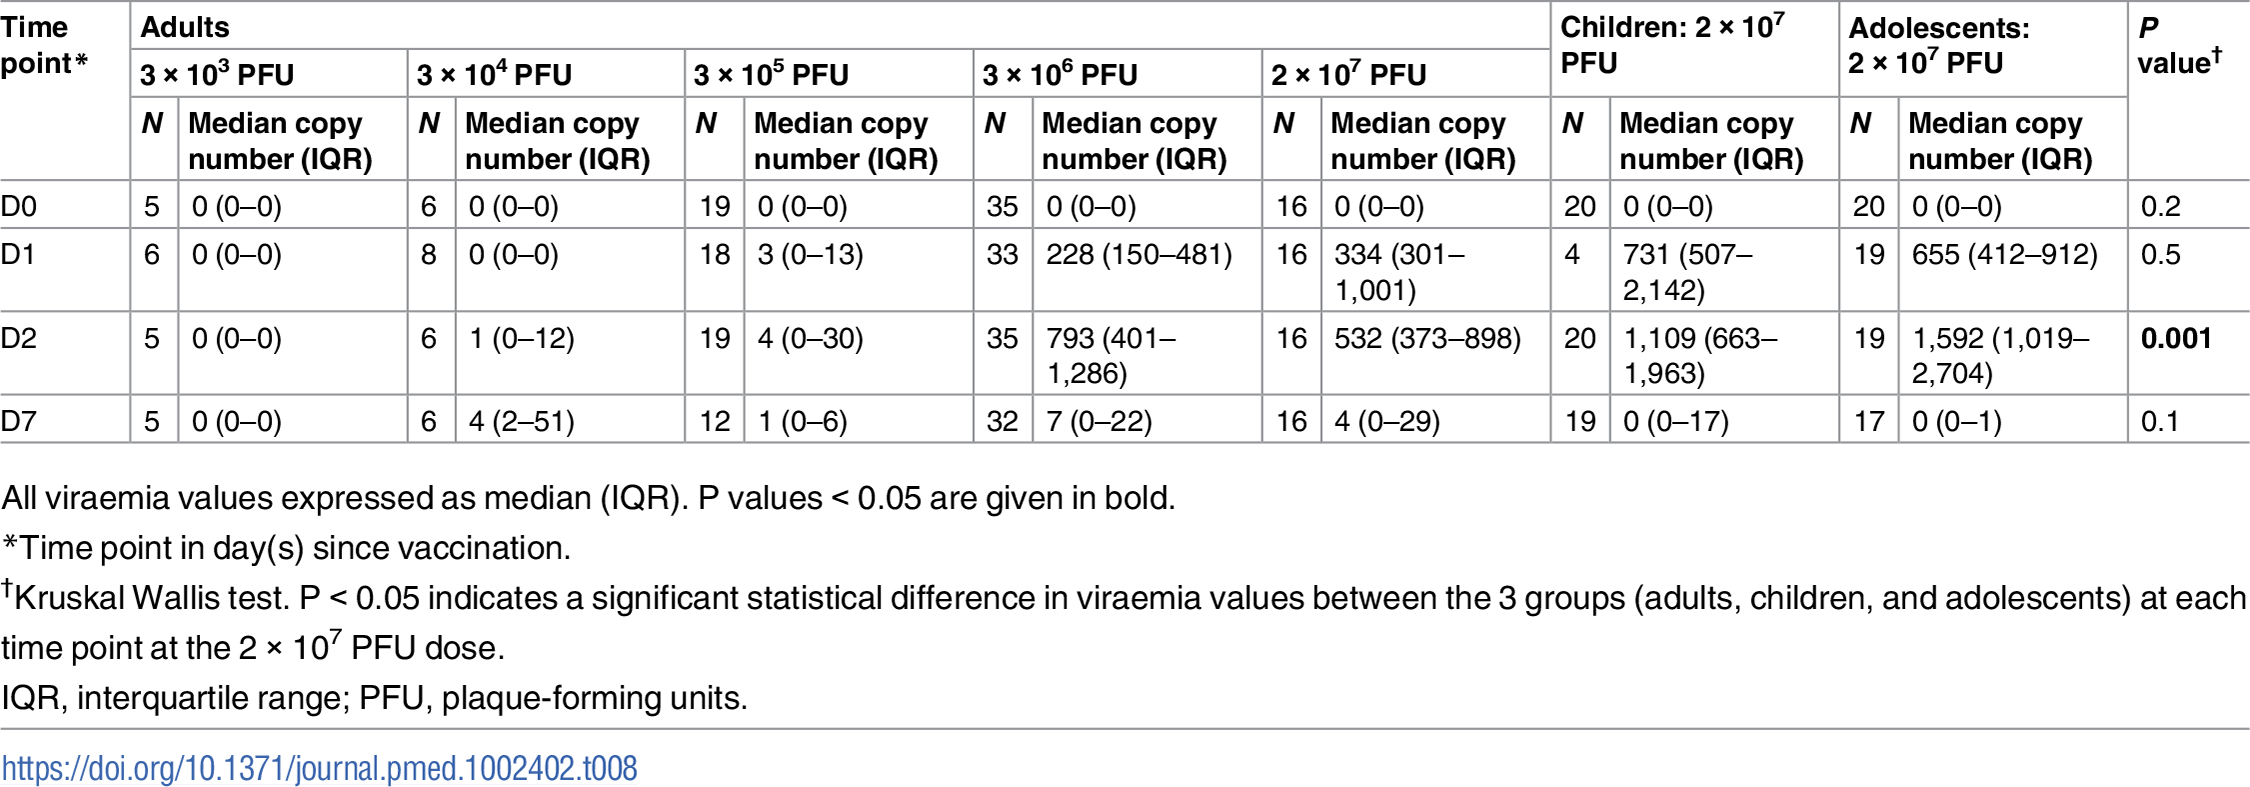 Description of viraemia by dose and age.